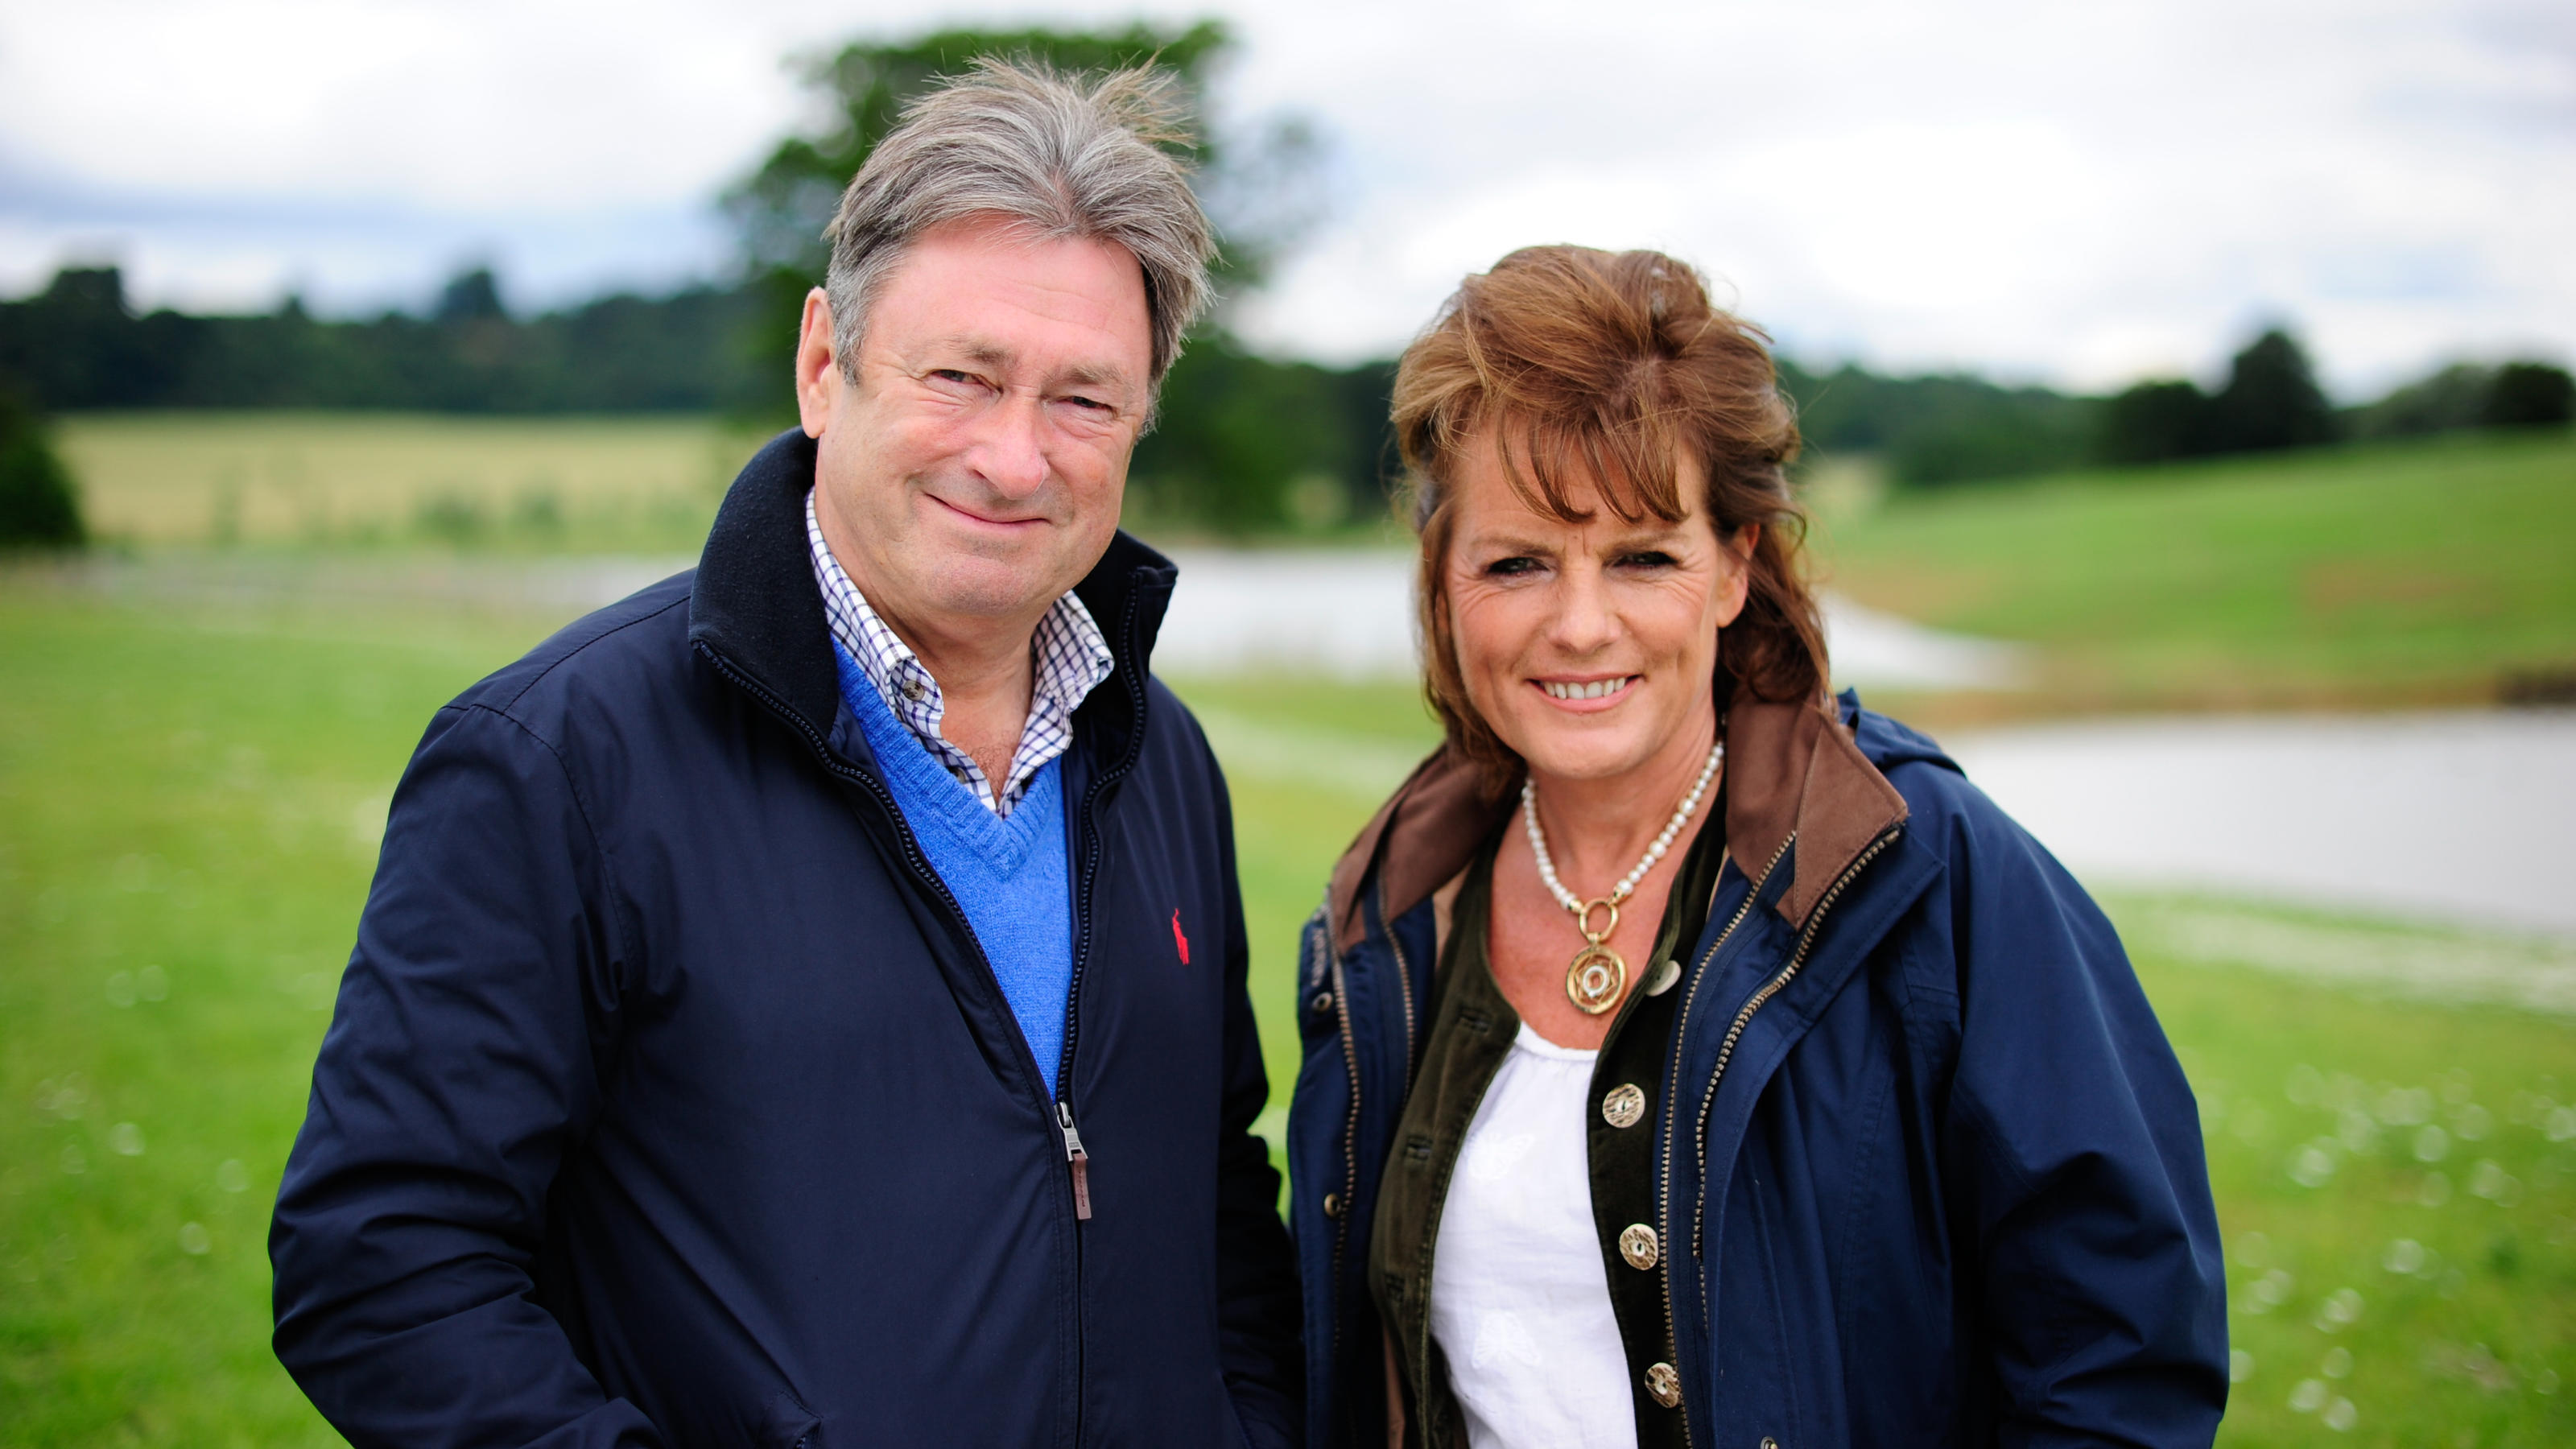 Capability Found Generic Alan Titchmarsh and Duchess of Rutland SpunGold and all3media